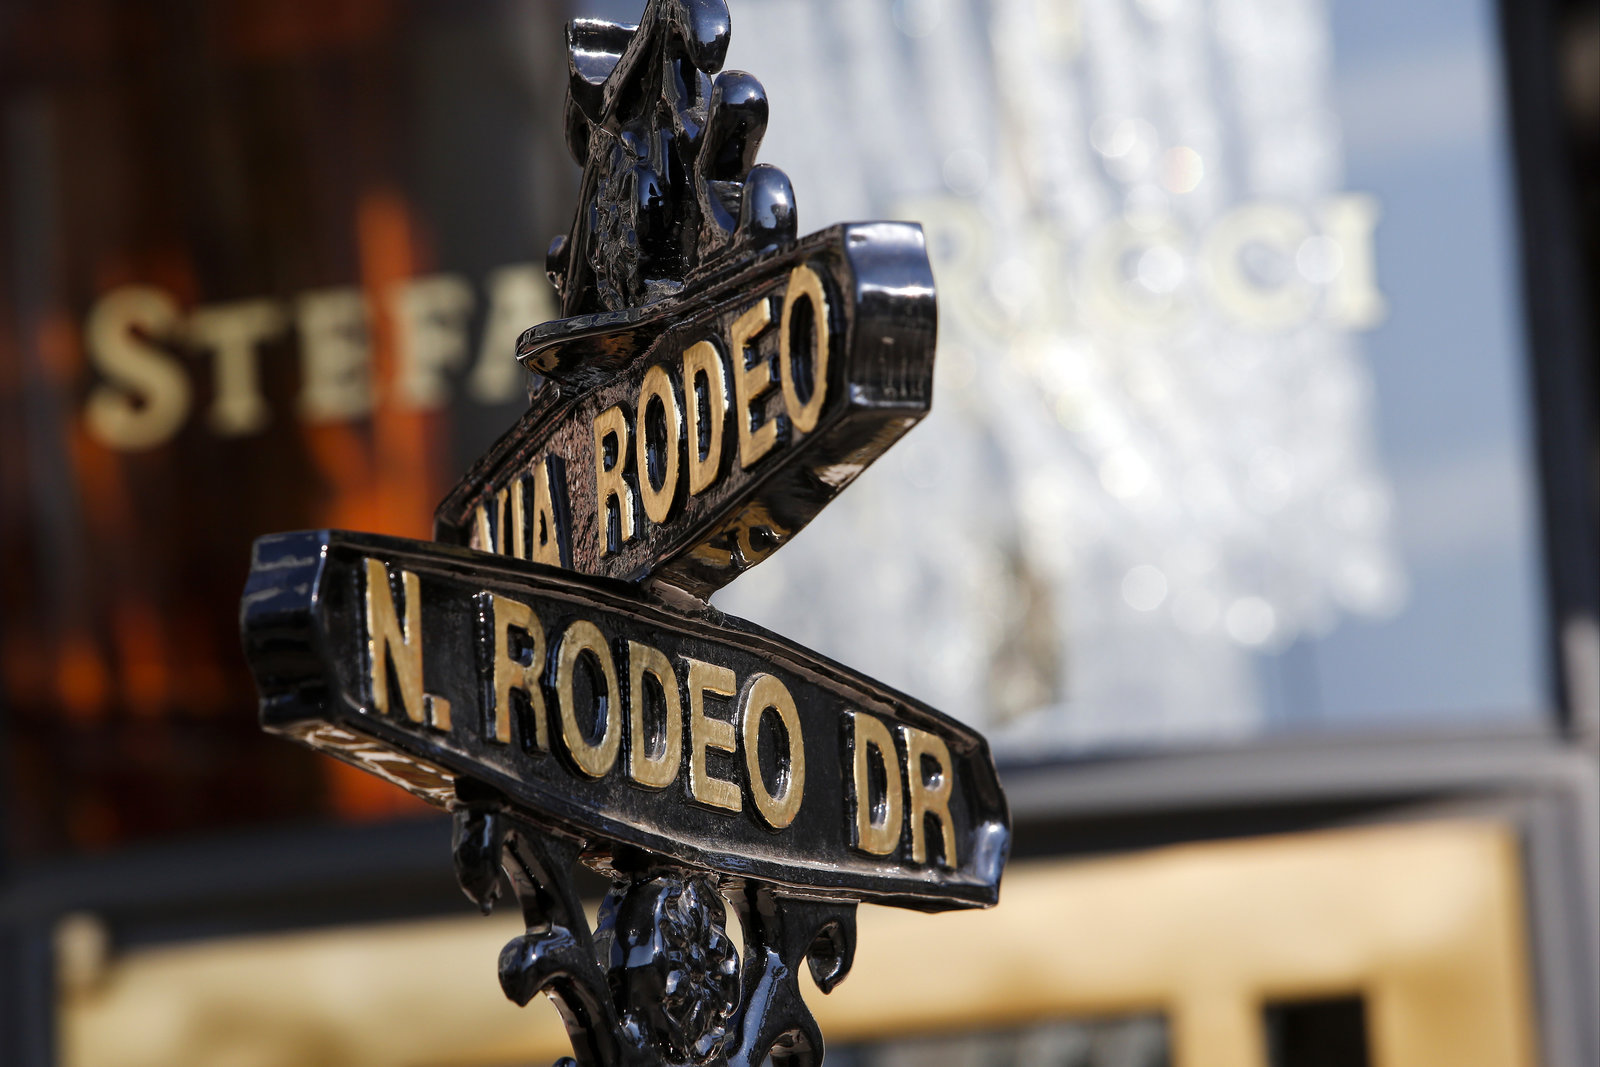 A Rodeo Drive street sign in Beverly Hills, California,